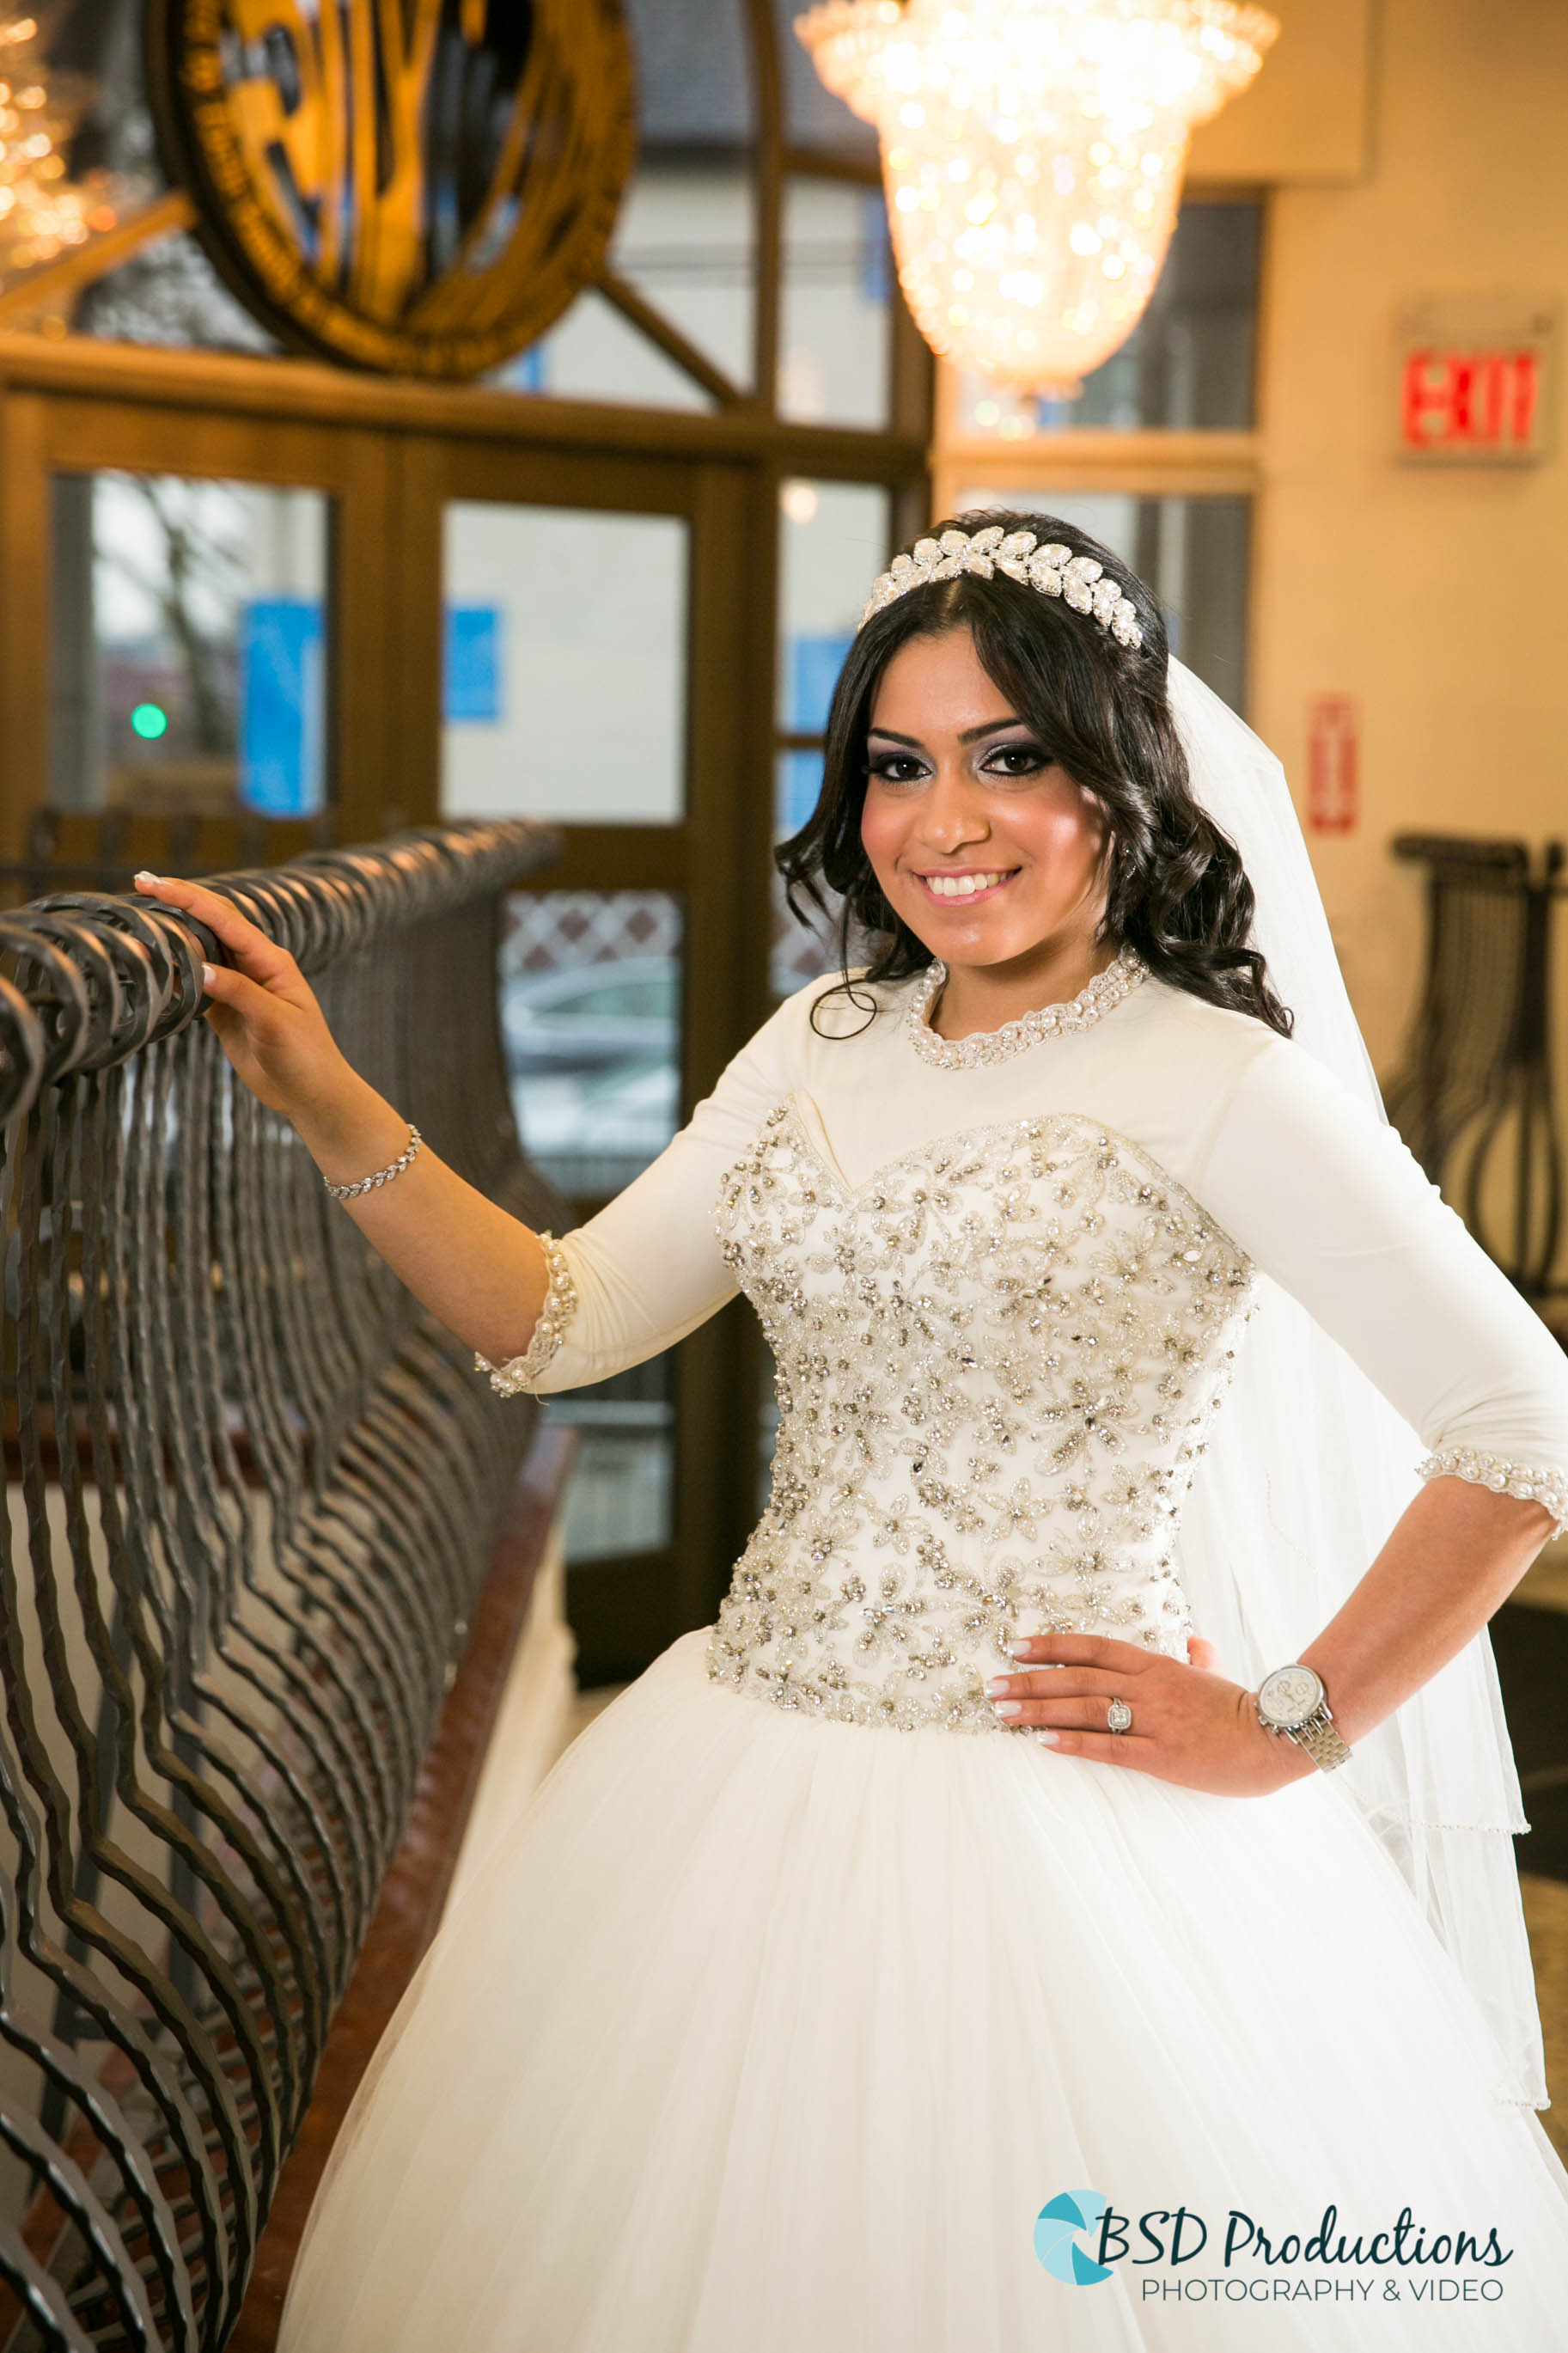 UH5A9041 Wedding – BSD Productions Photography